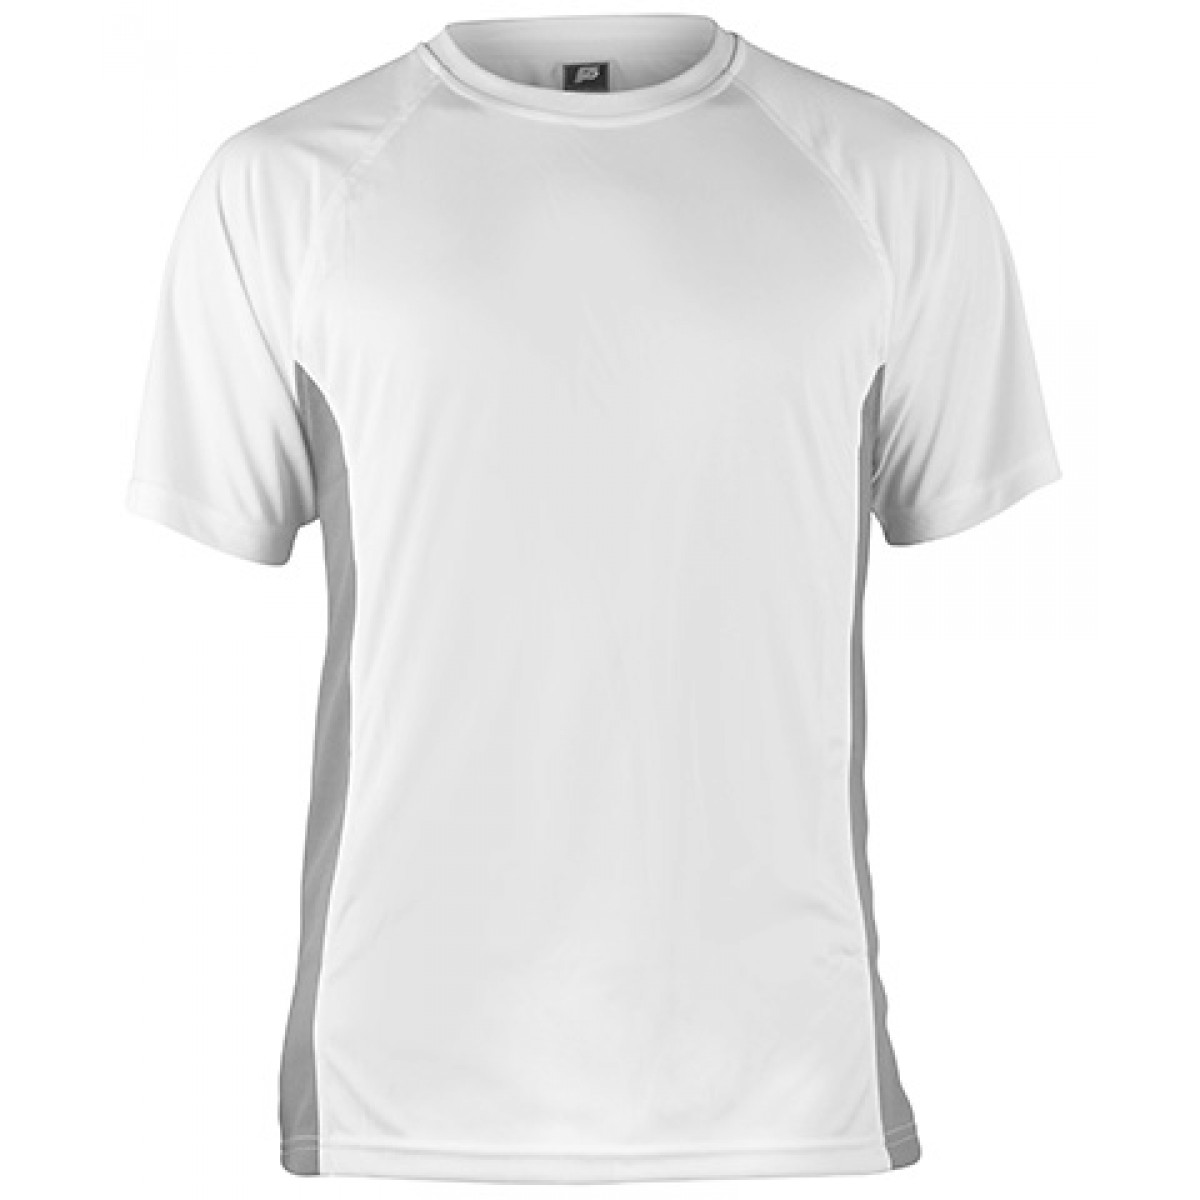 Short Sleeves Performance With Side Insert-White/Gray-M